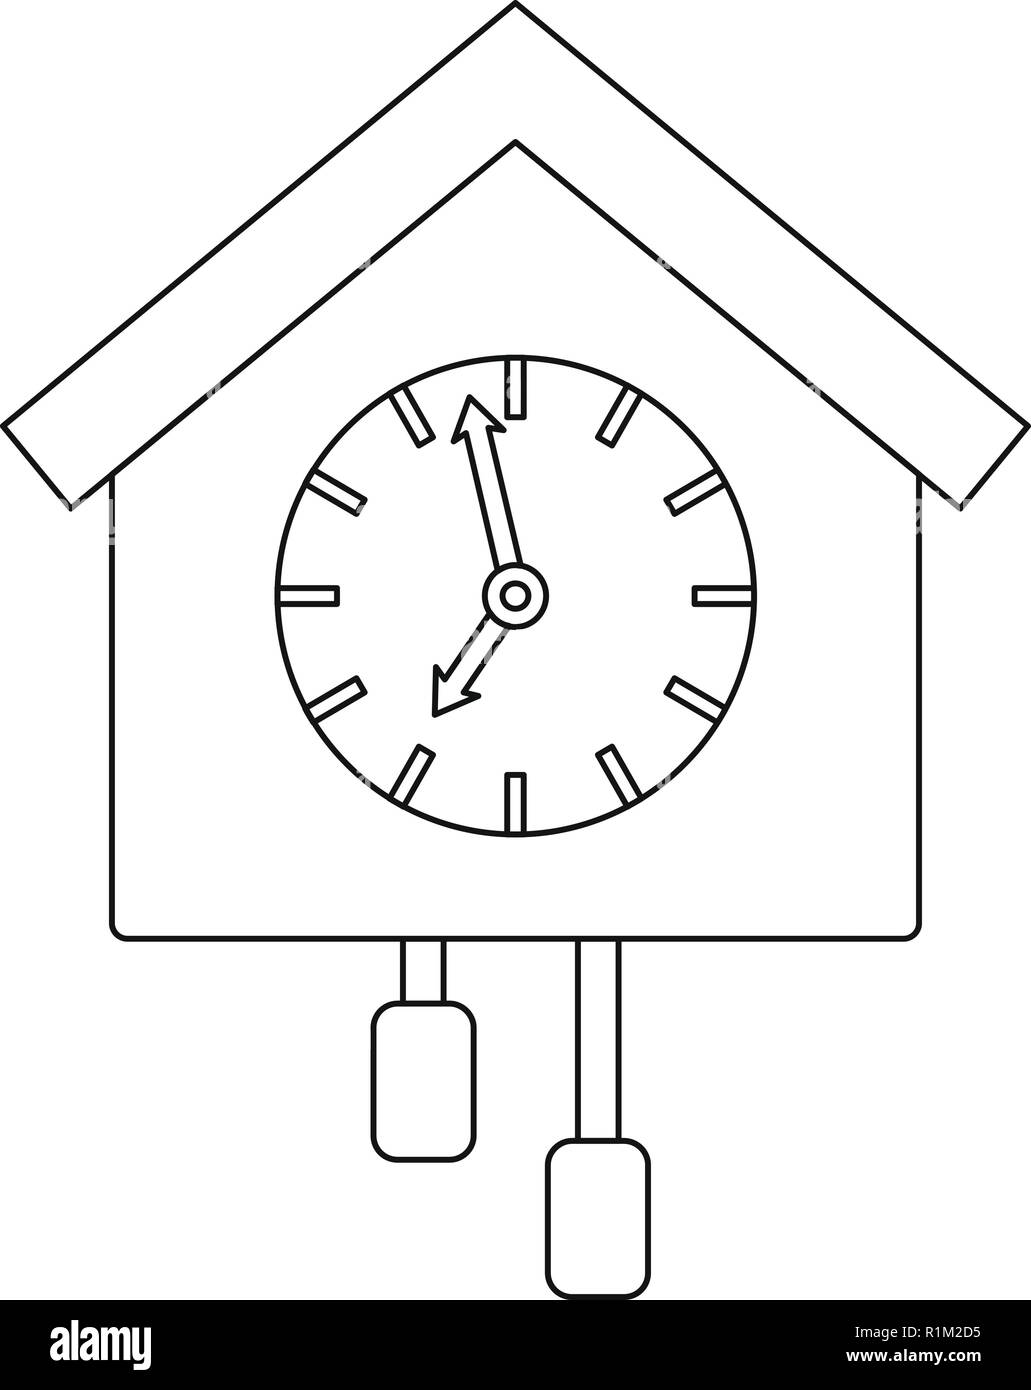 Pendulum Clock Stock Vector Images Alamy Grandfather Diagram Cuckoo Icon Outline Illustration Of For Web